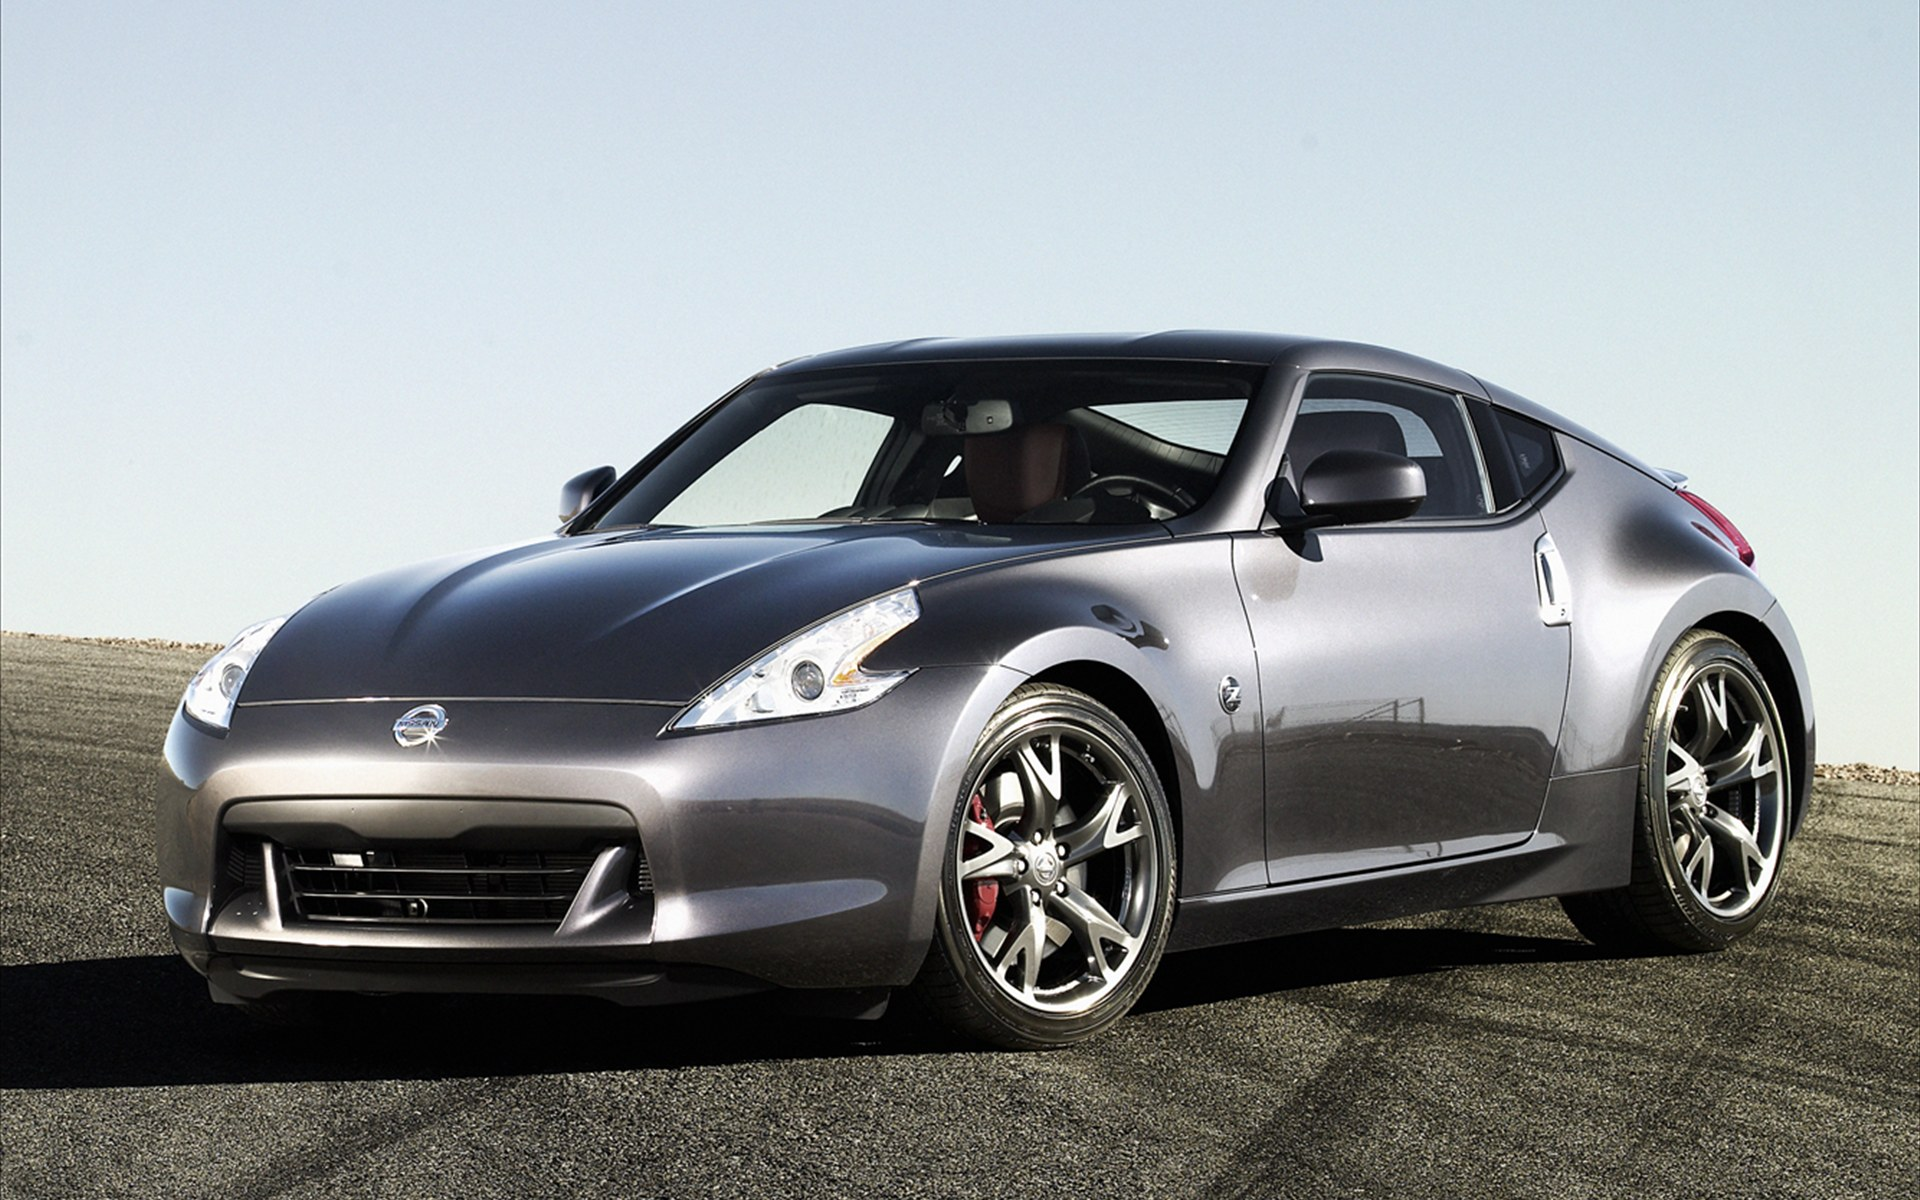 nissan 370z pictures #2